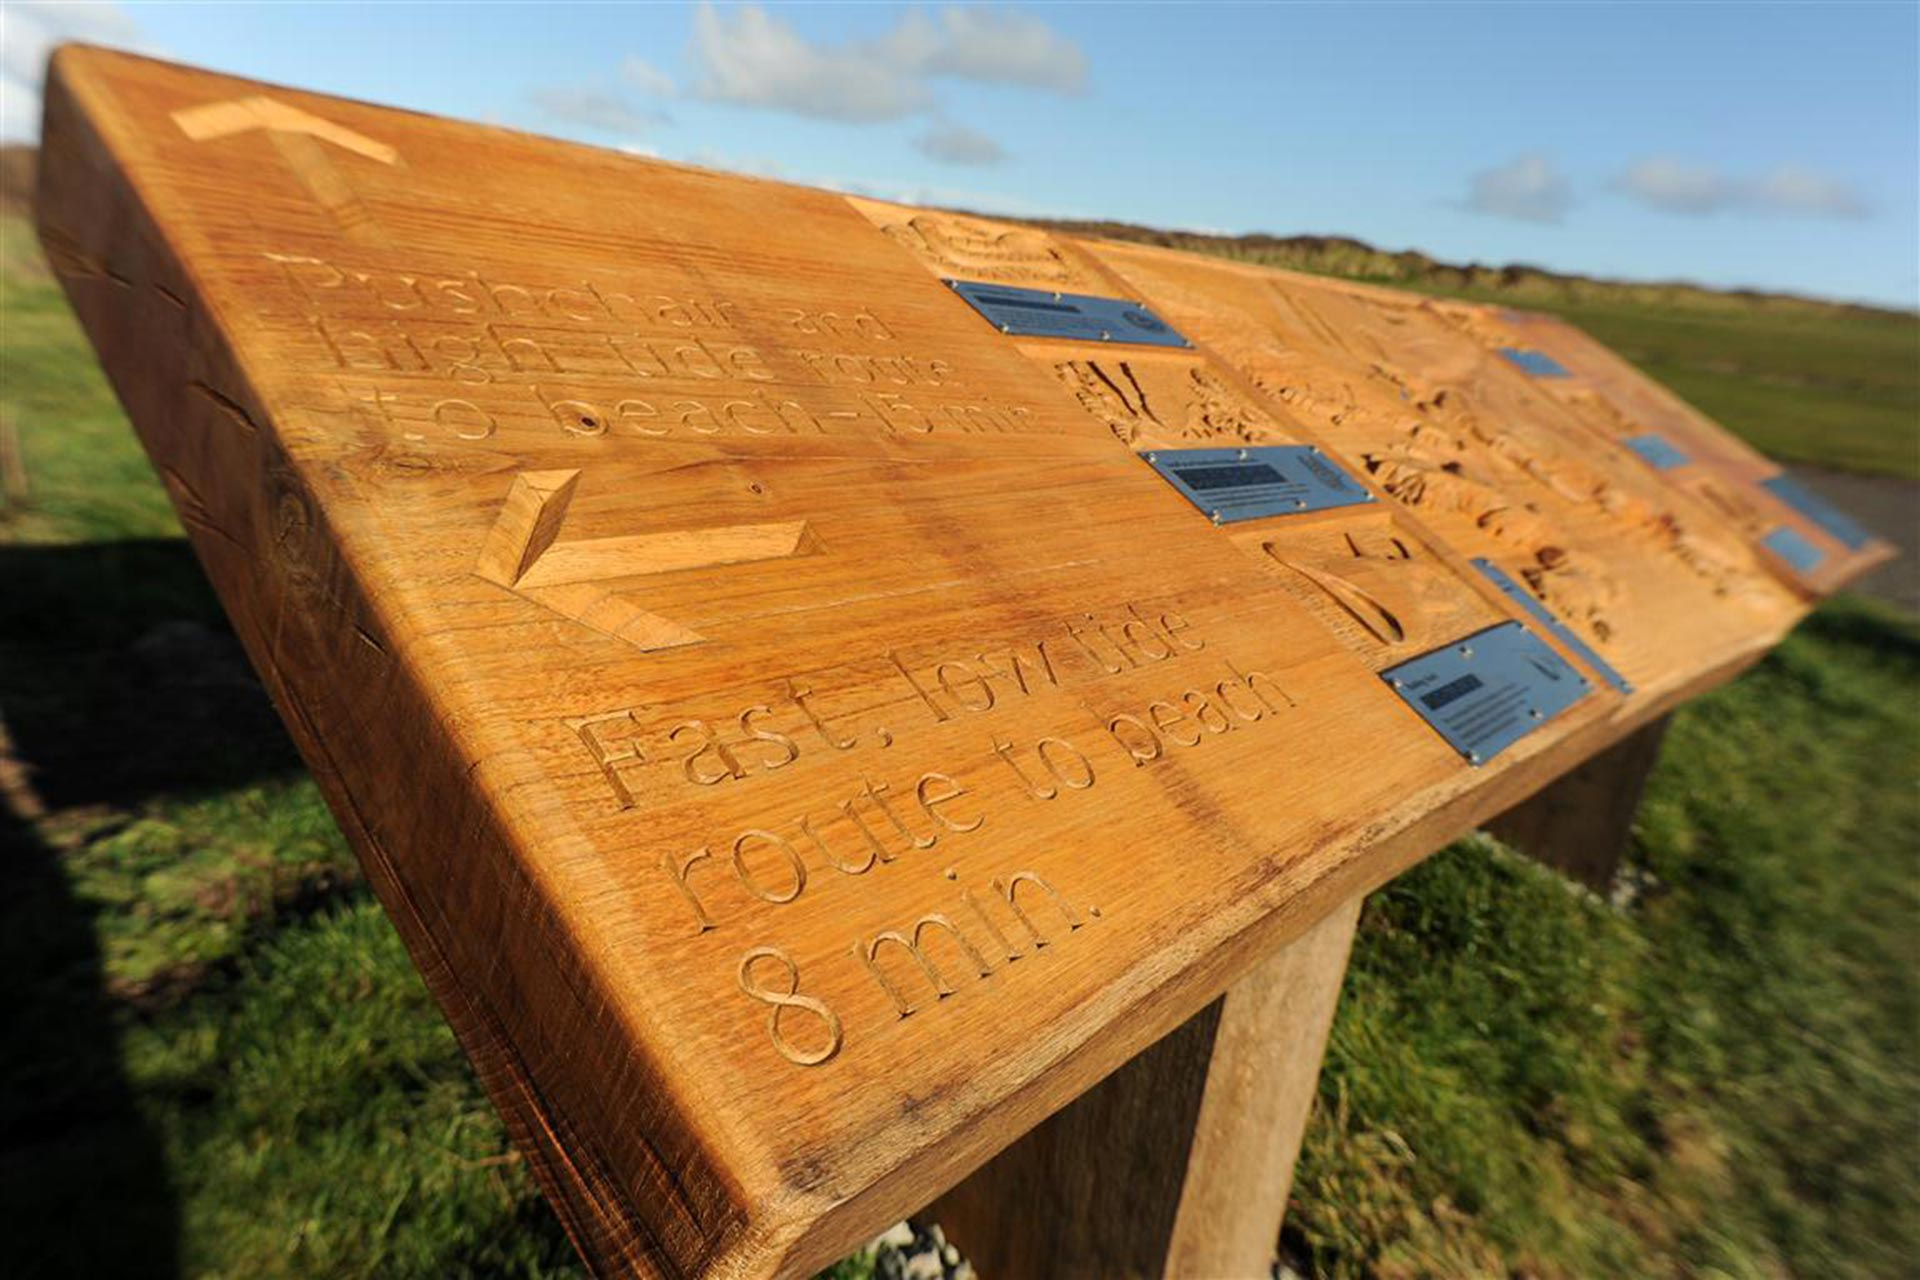 Hand carved way finding arrows within sign for National Trust at Kynance Cove